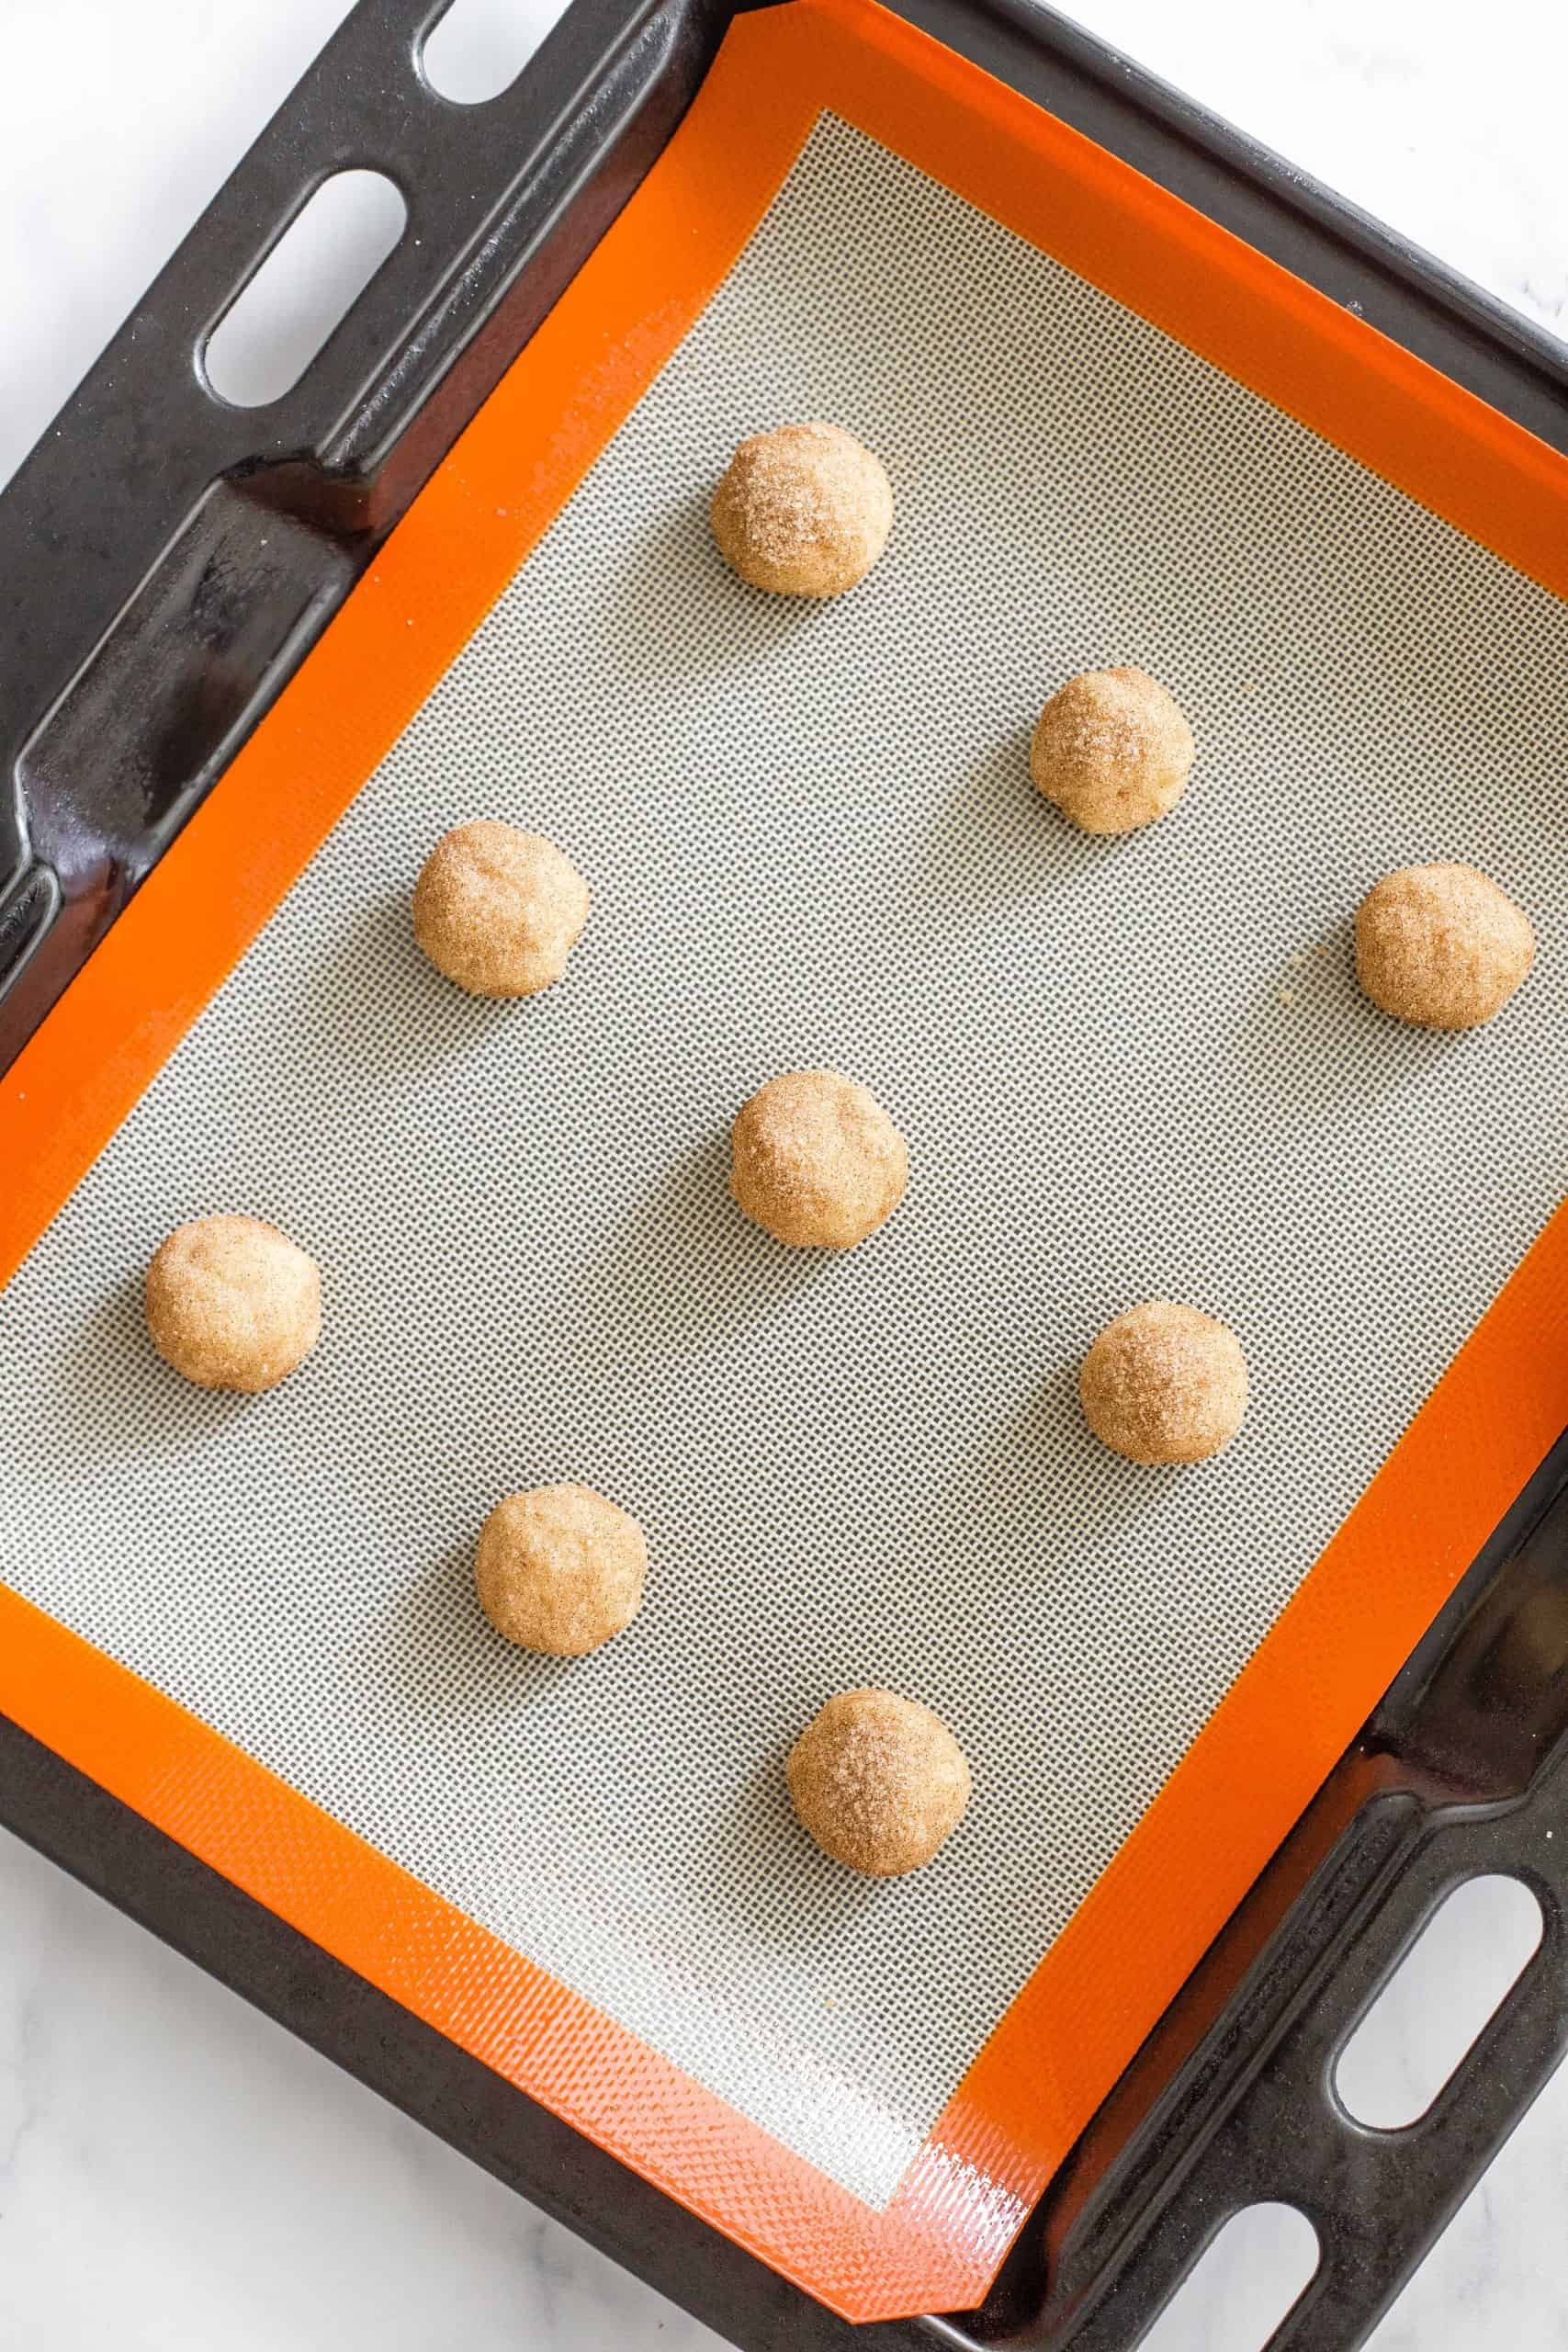 Cookie dough balls on a silpat-lined baking sheet.